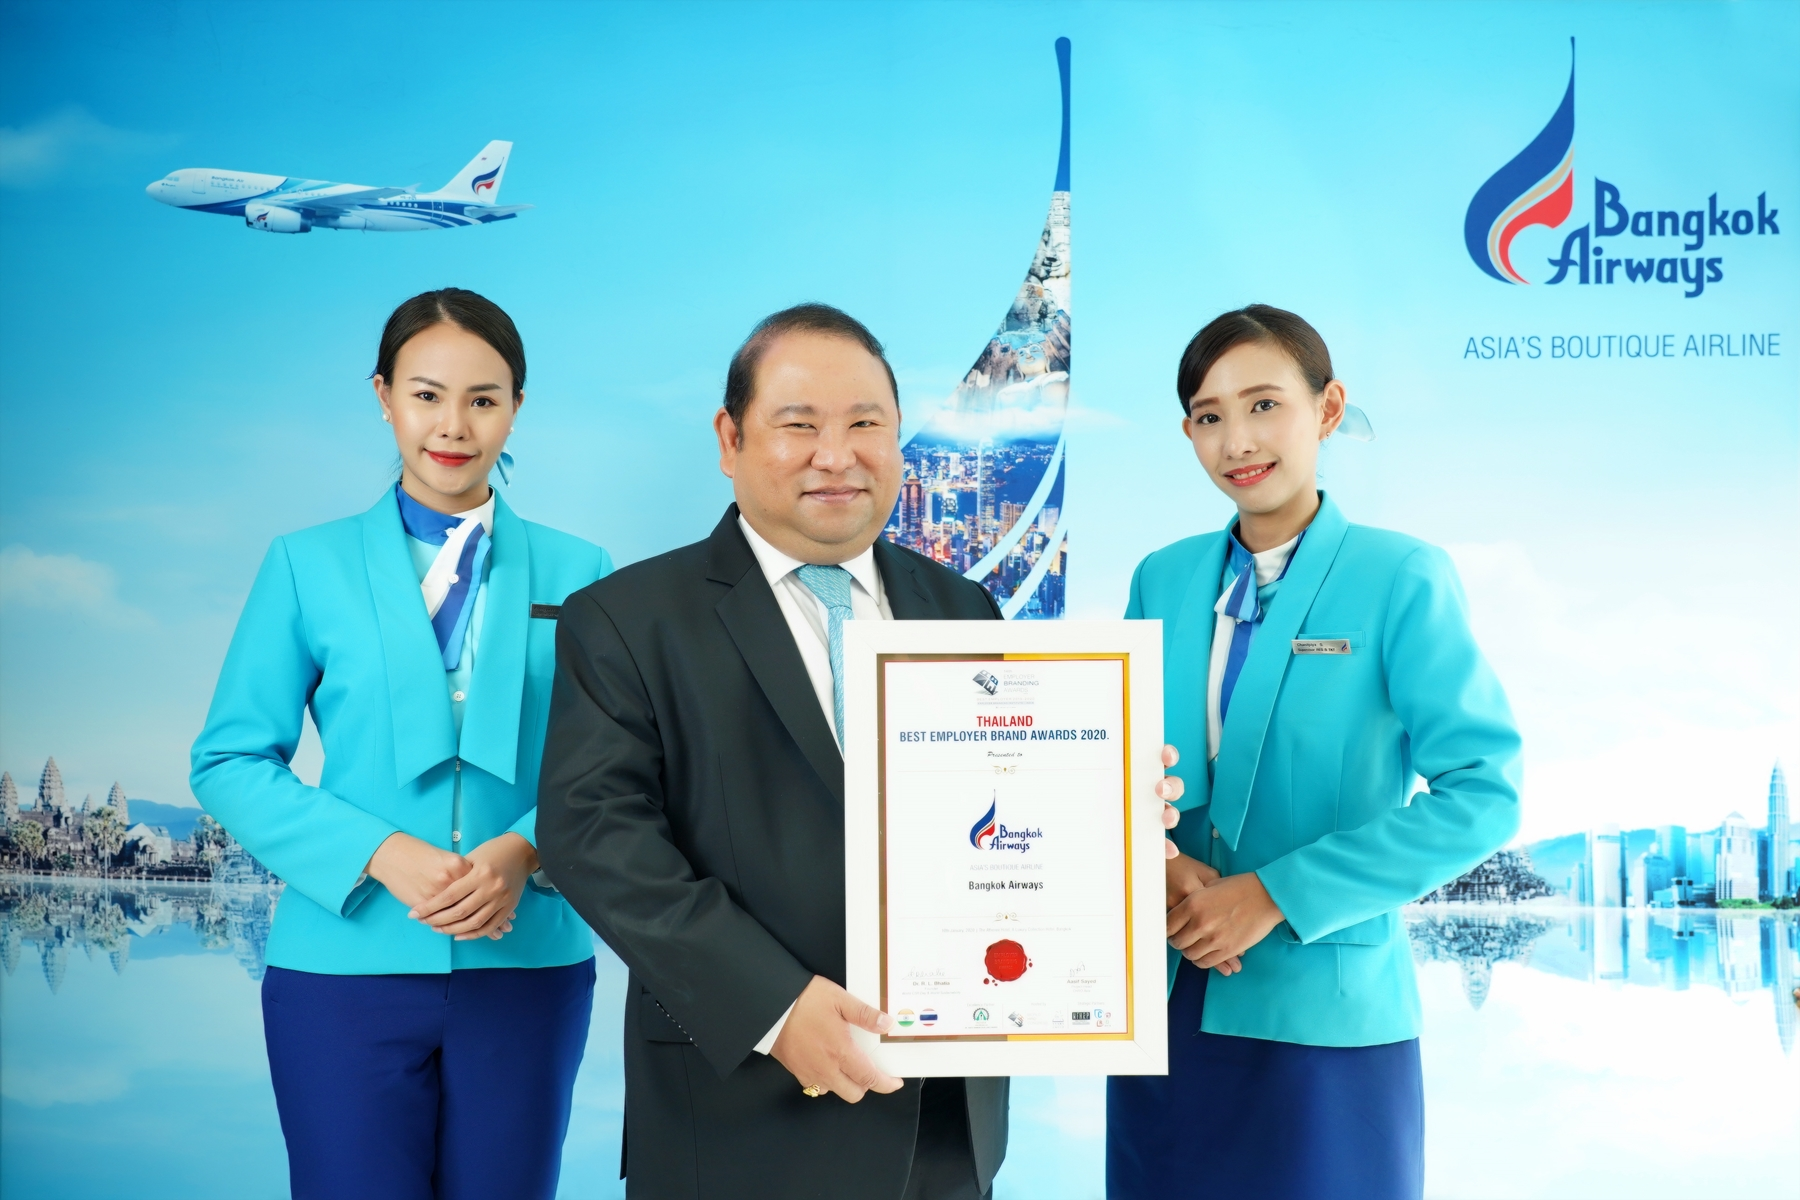 Bangkok Airways Wins Thailand Best Employer Brand Award 2020